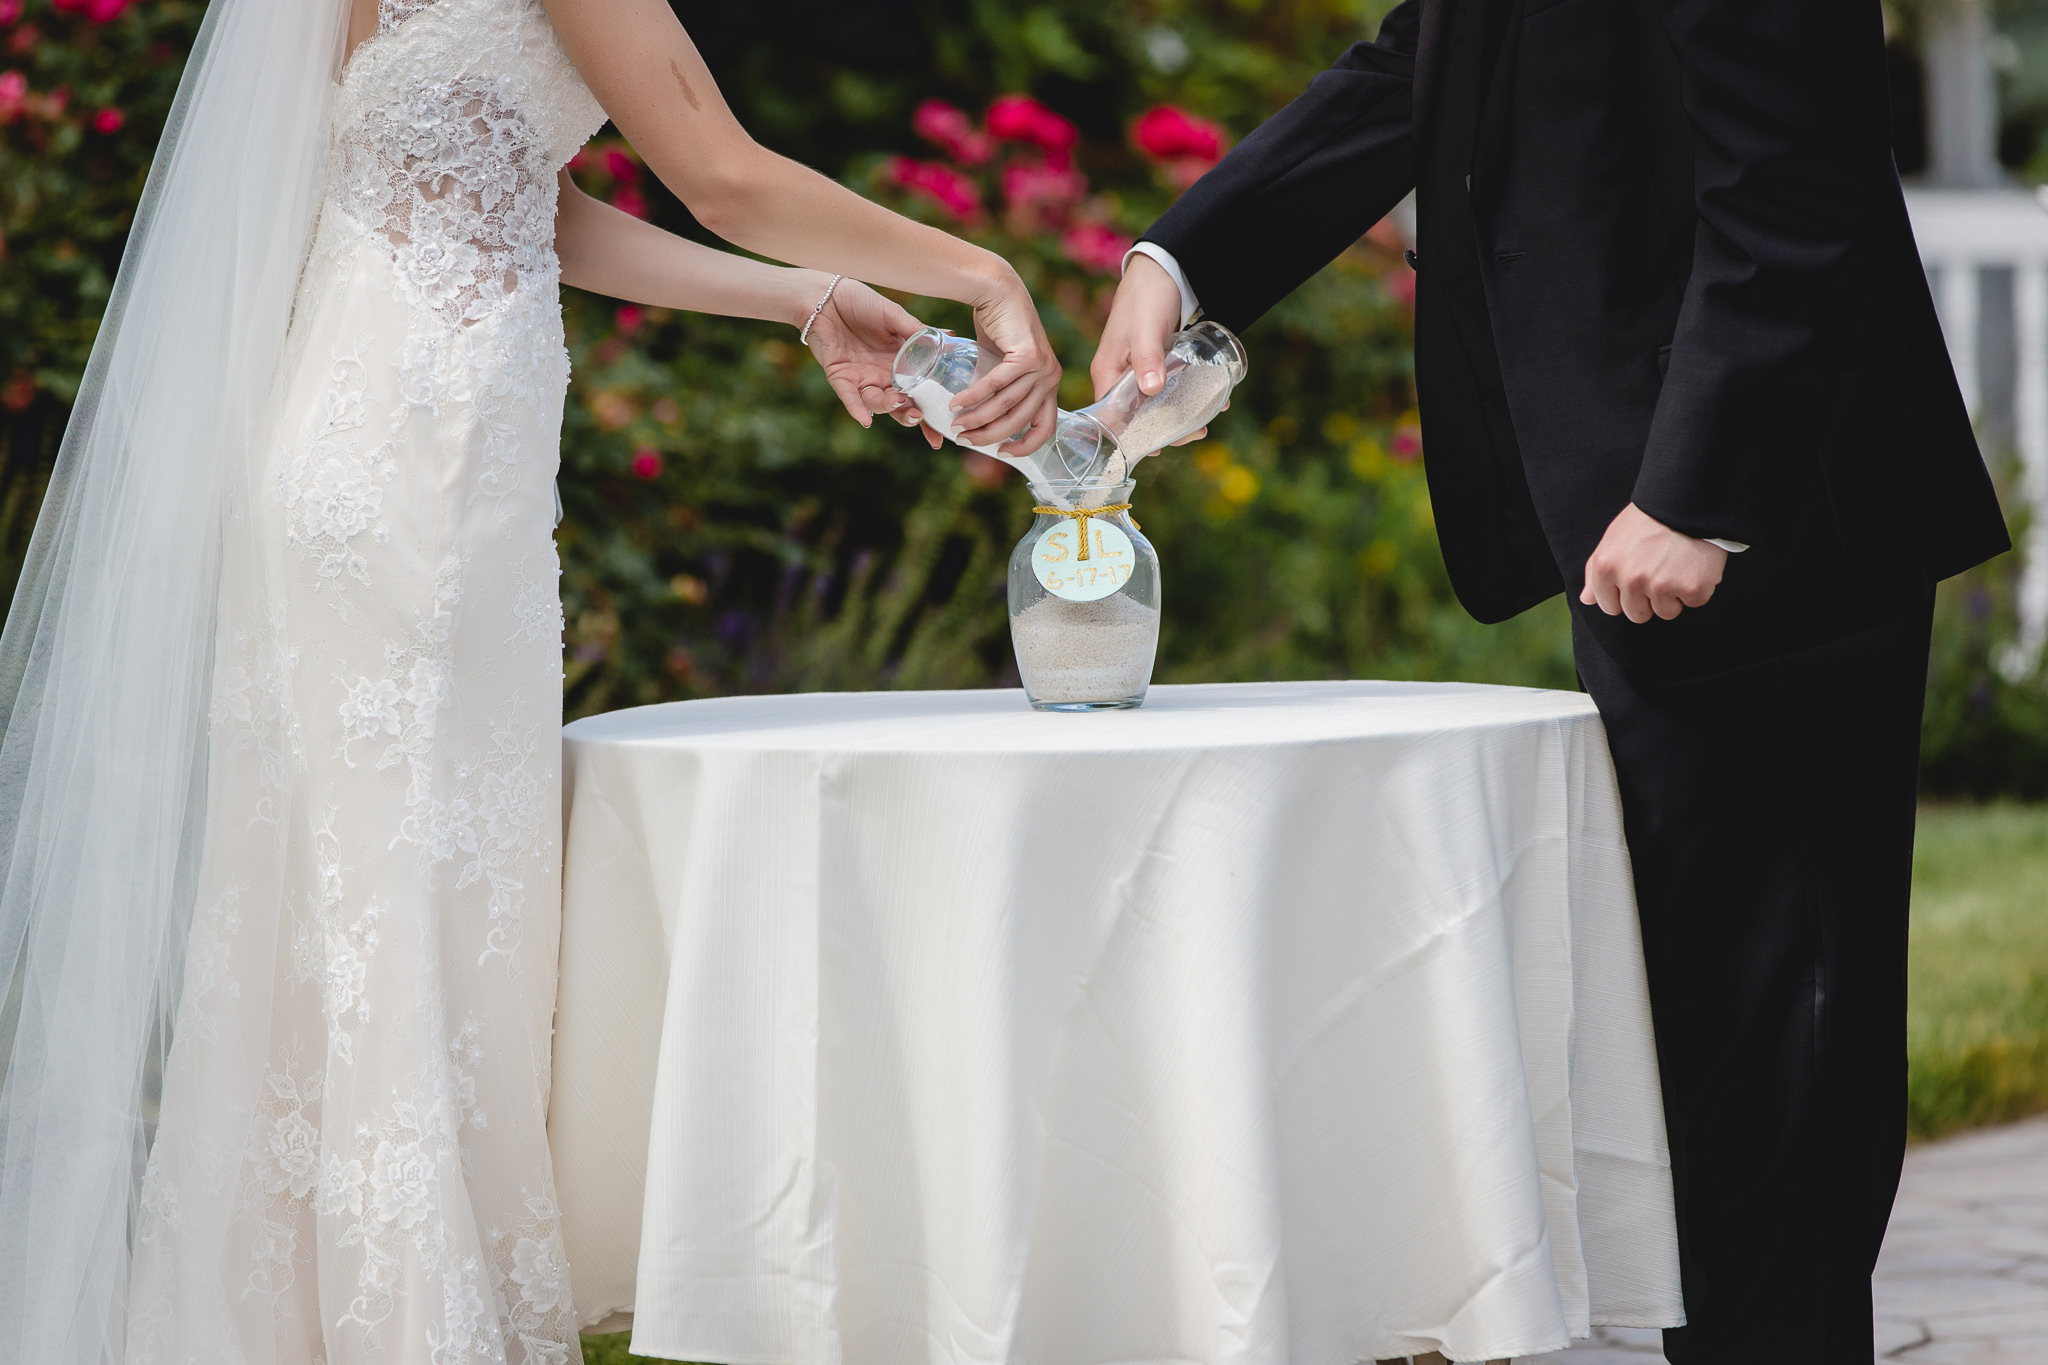 Unity sand ceremony at an outdoor wedding at Greystone Fields